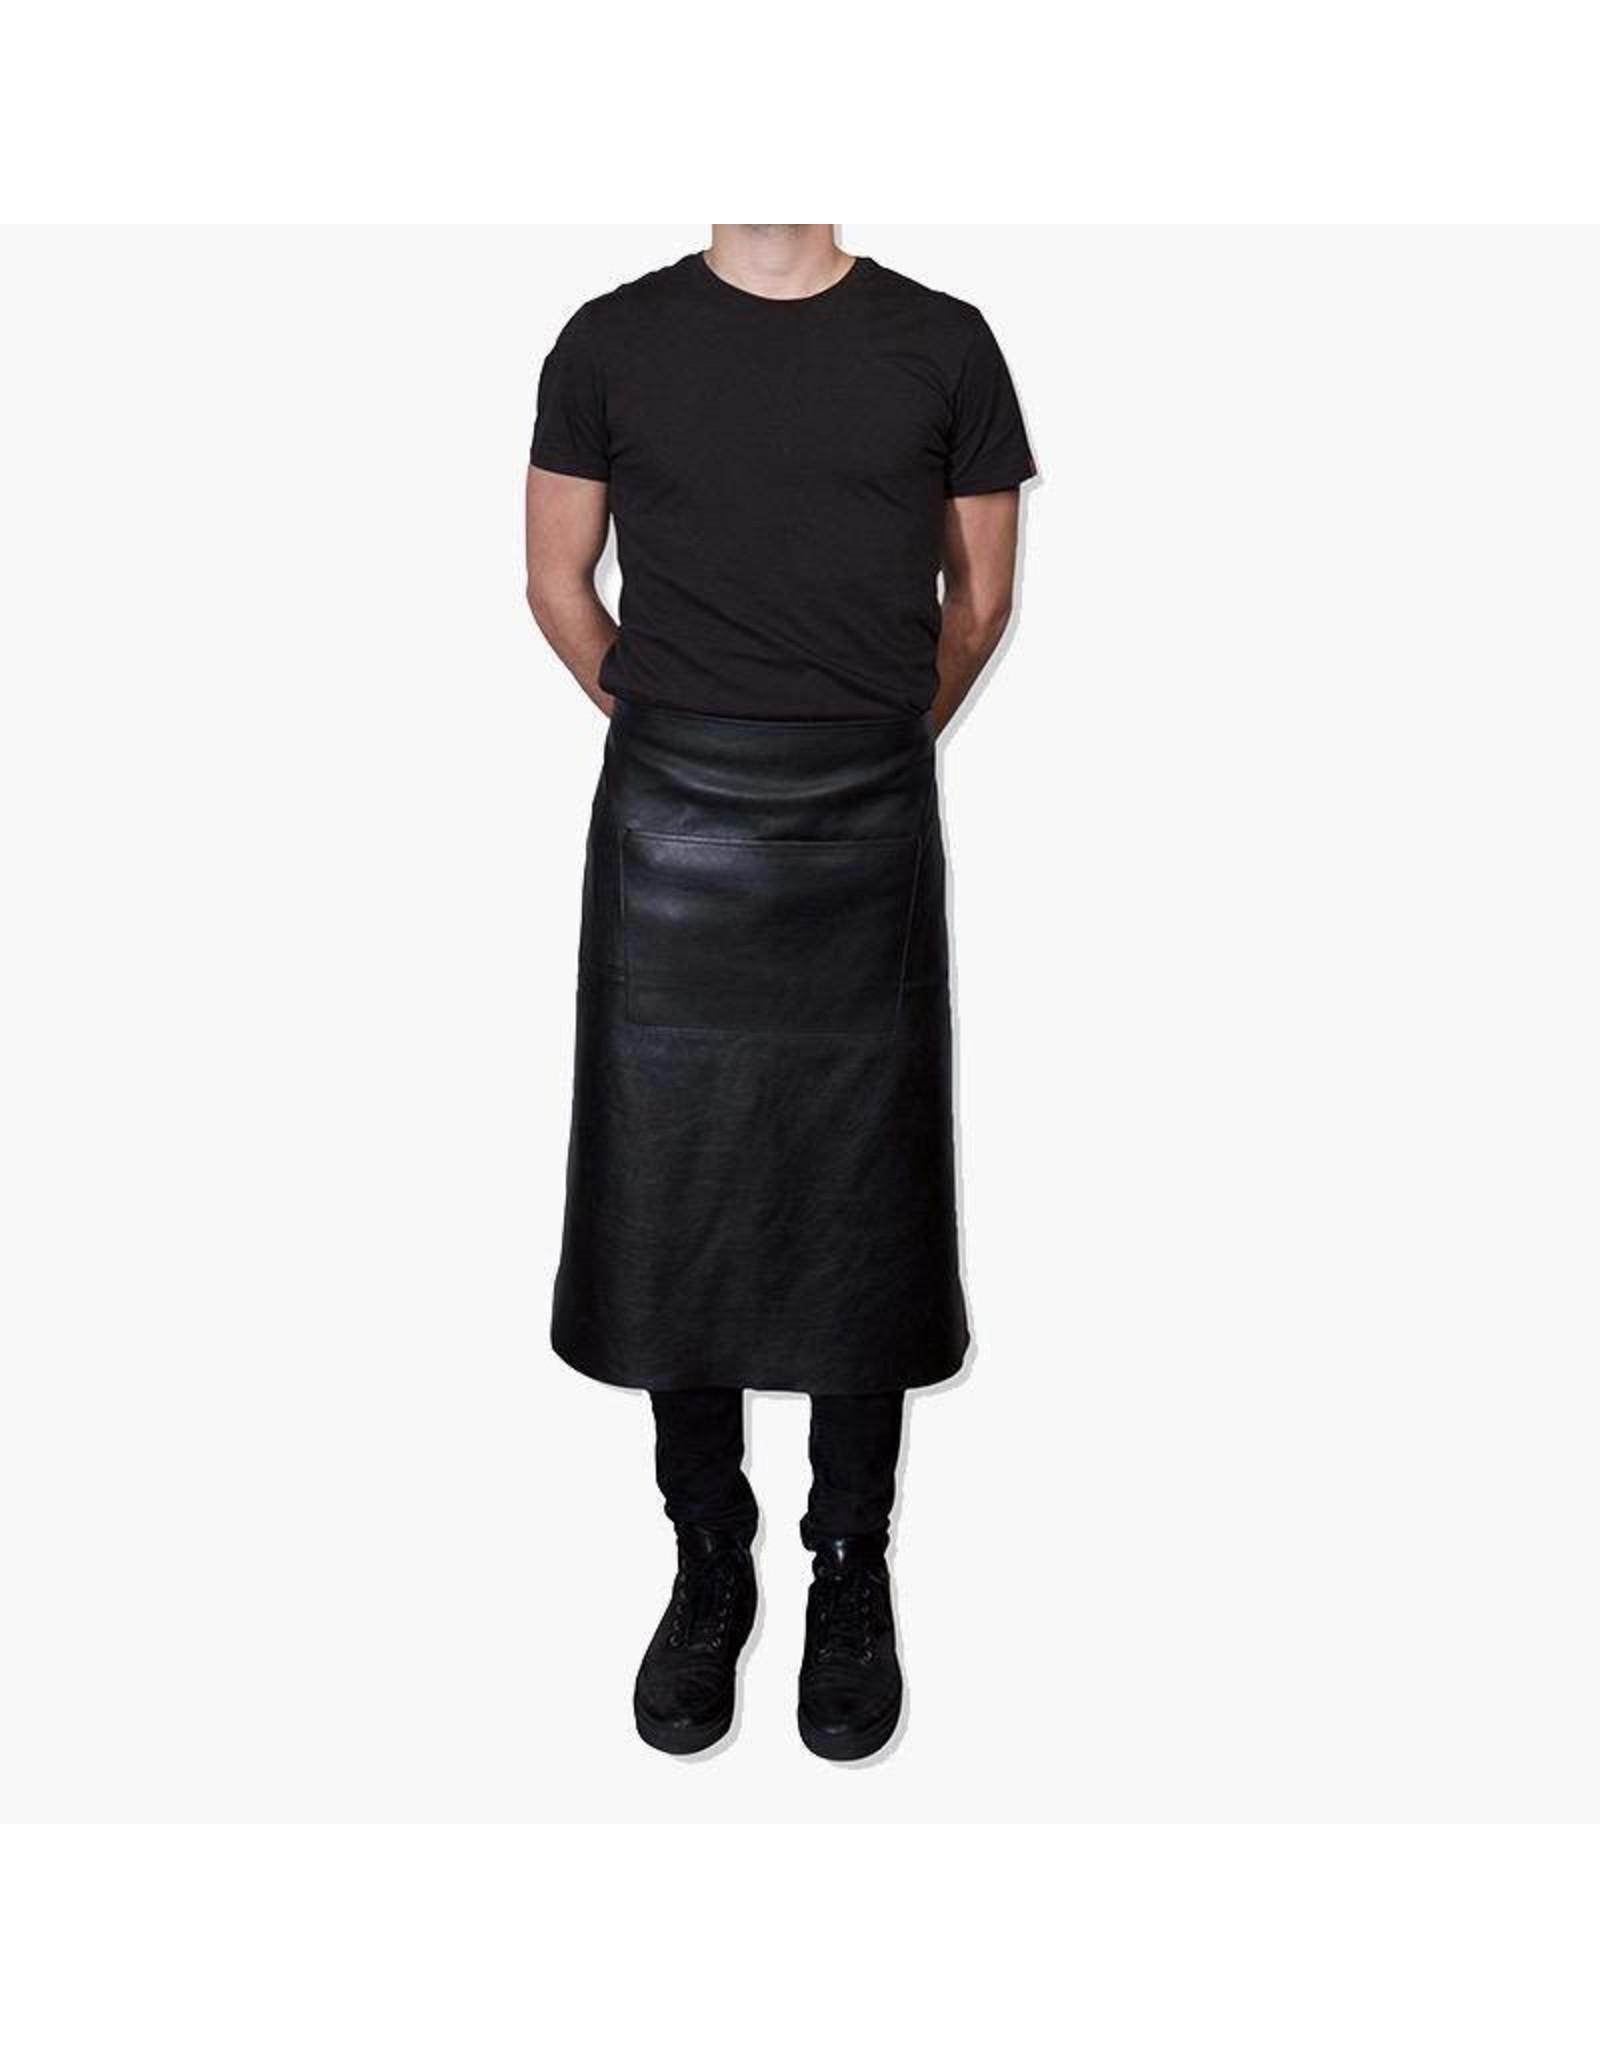 Dutchdeluxe DDLP WAIST APRONS LONG BLACK